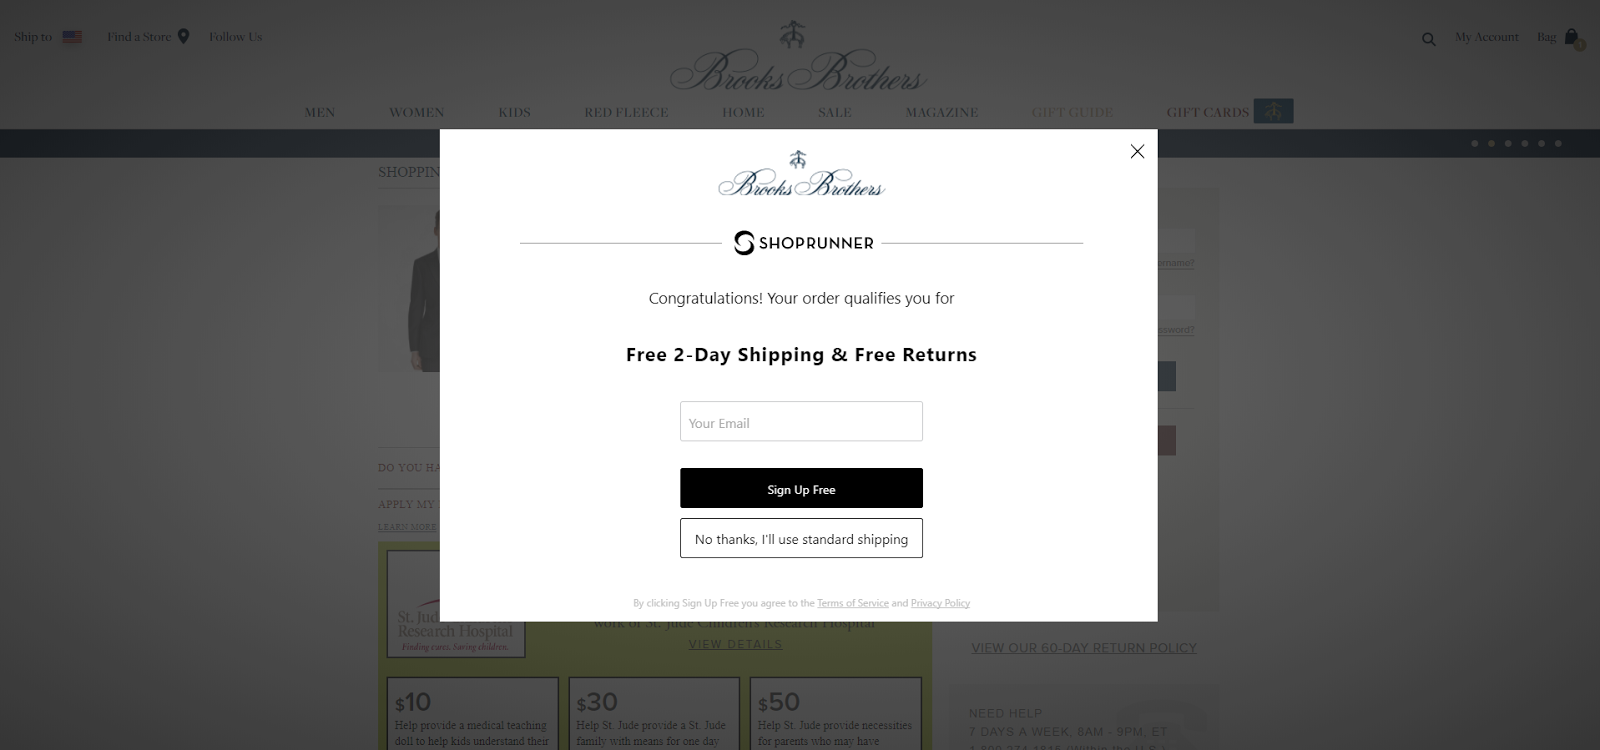 Brooks Brothers' Cart Abandonment popup